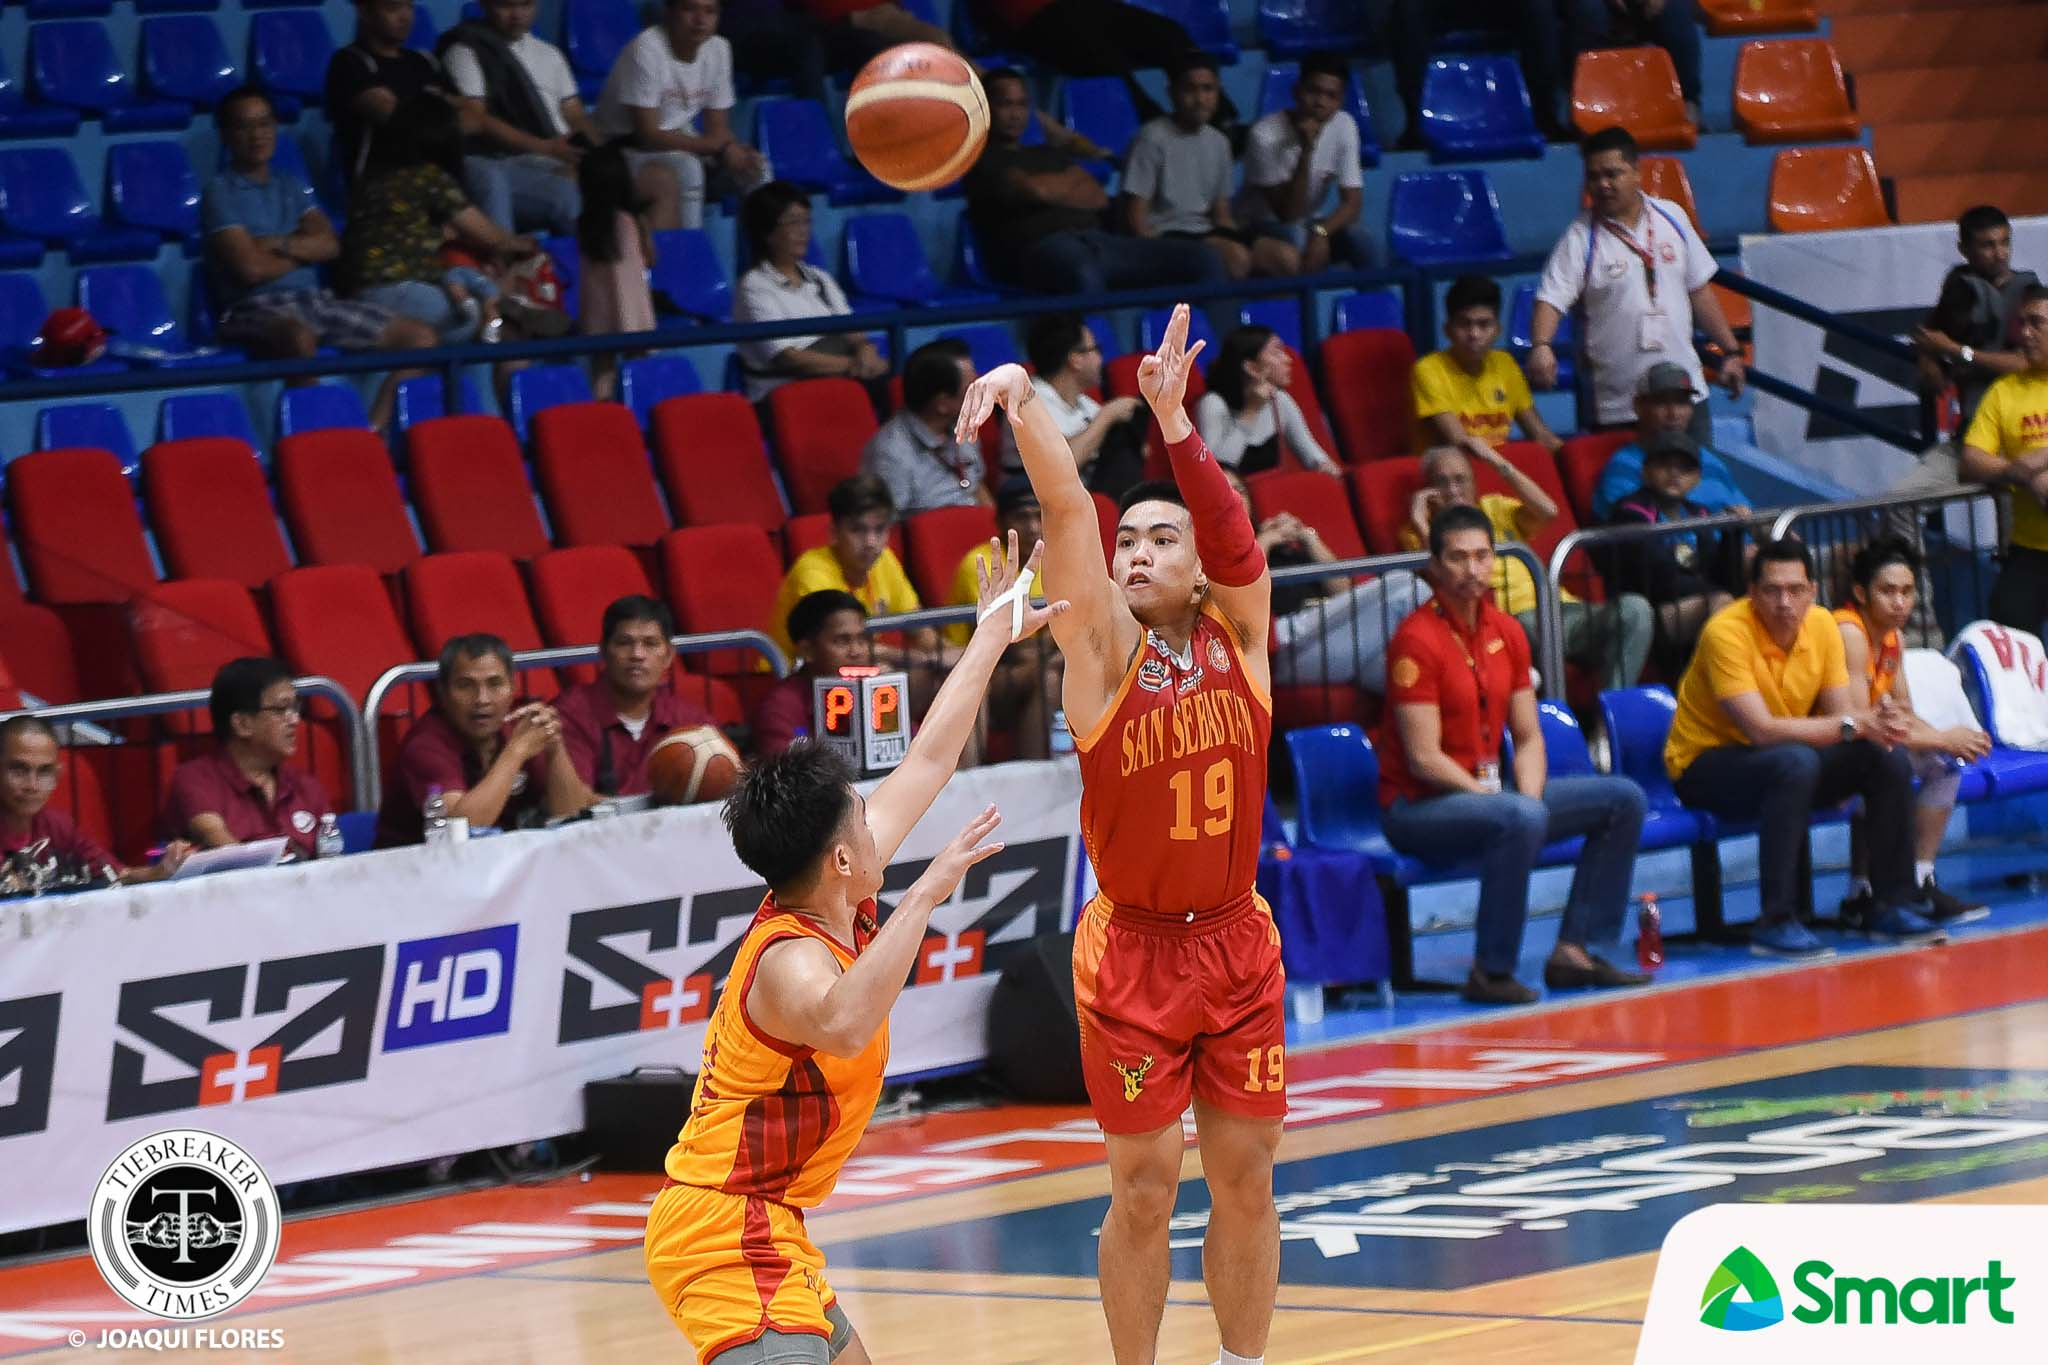 Tiebreaker Times RK Ilagan continues to make amends to Baste, sets career-high against Mapua Basketball MIT NCAA News SSC-R  Warren Bonifacio San Sebastian Seniors Basketball RK Ilagan NCAA Season 94 Seniors Basketball NCAA Season 94 Michael Calisaan Mapua Seniors Basketball Egay Macaraya Atoy Co